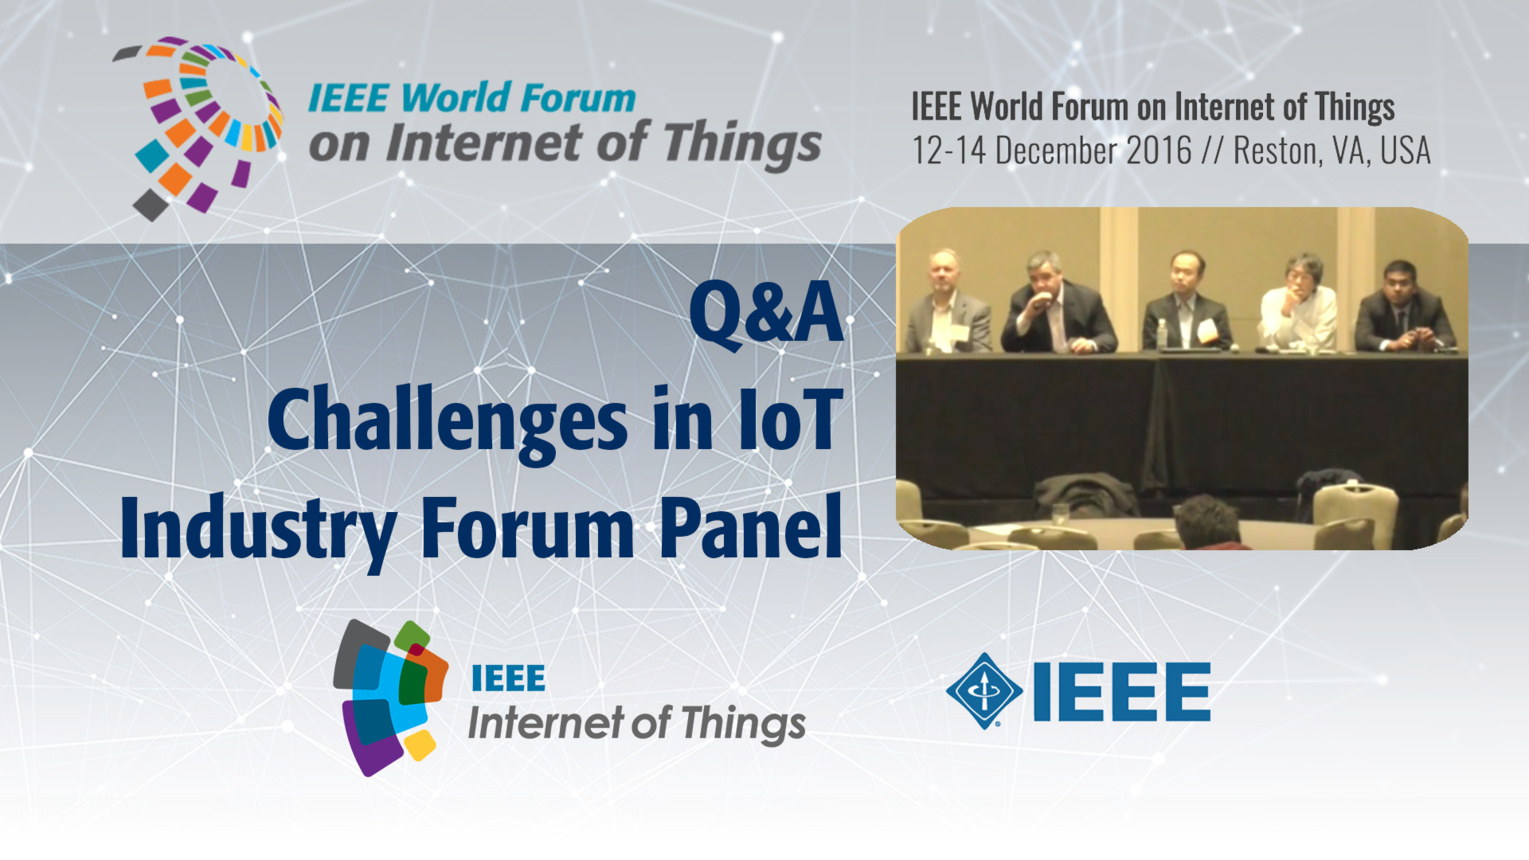 Q&A - IoT Challenges Industry Forum Panel: WF IoT 2016